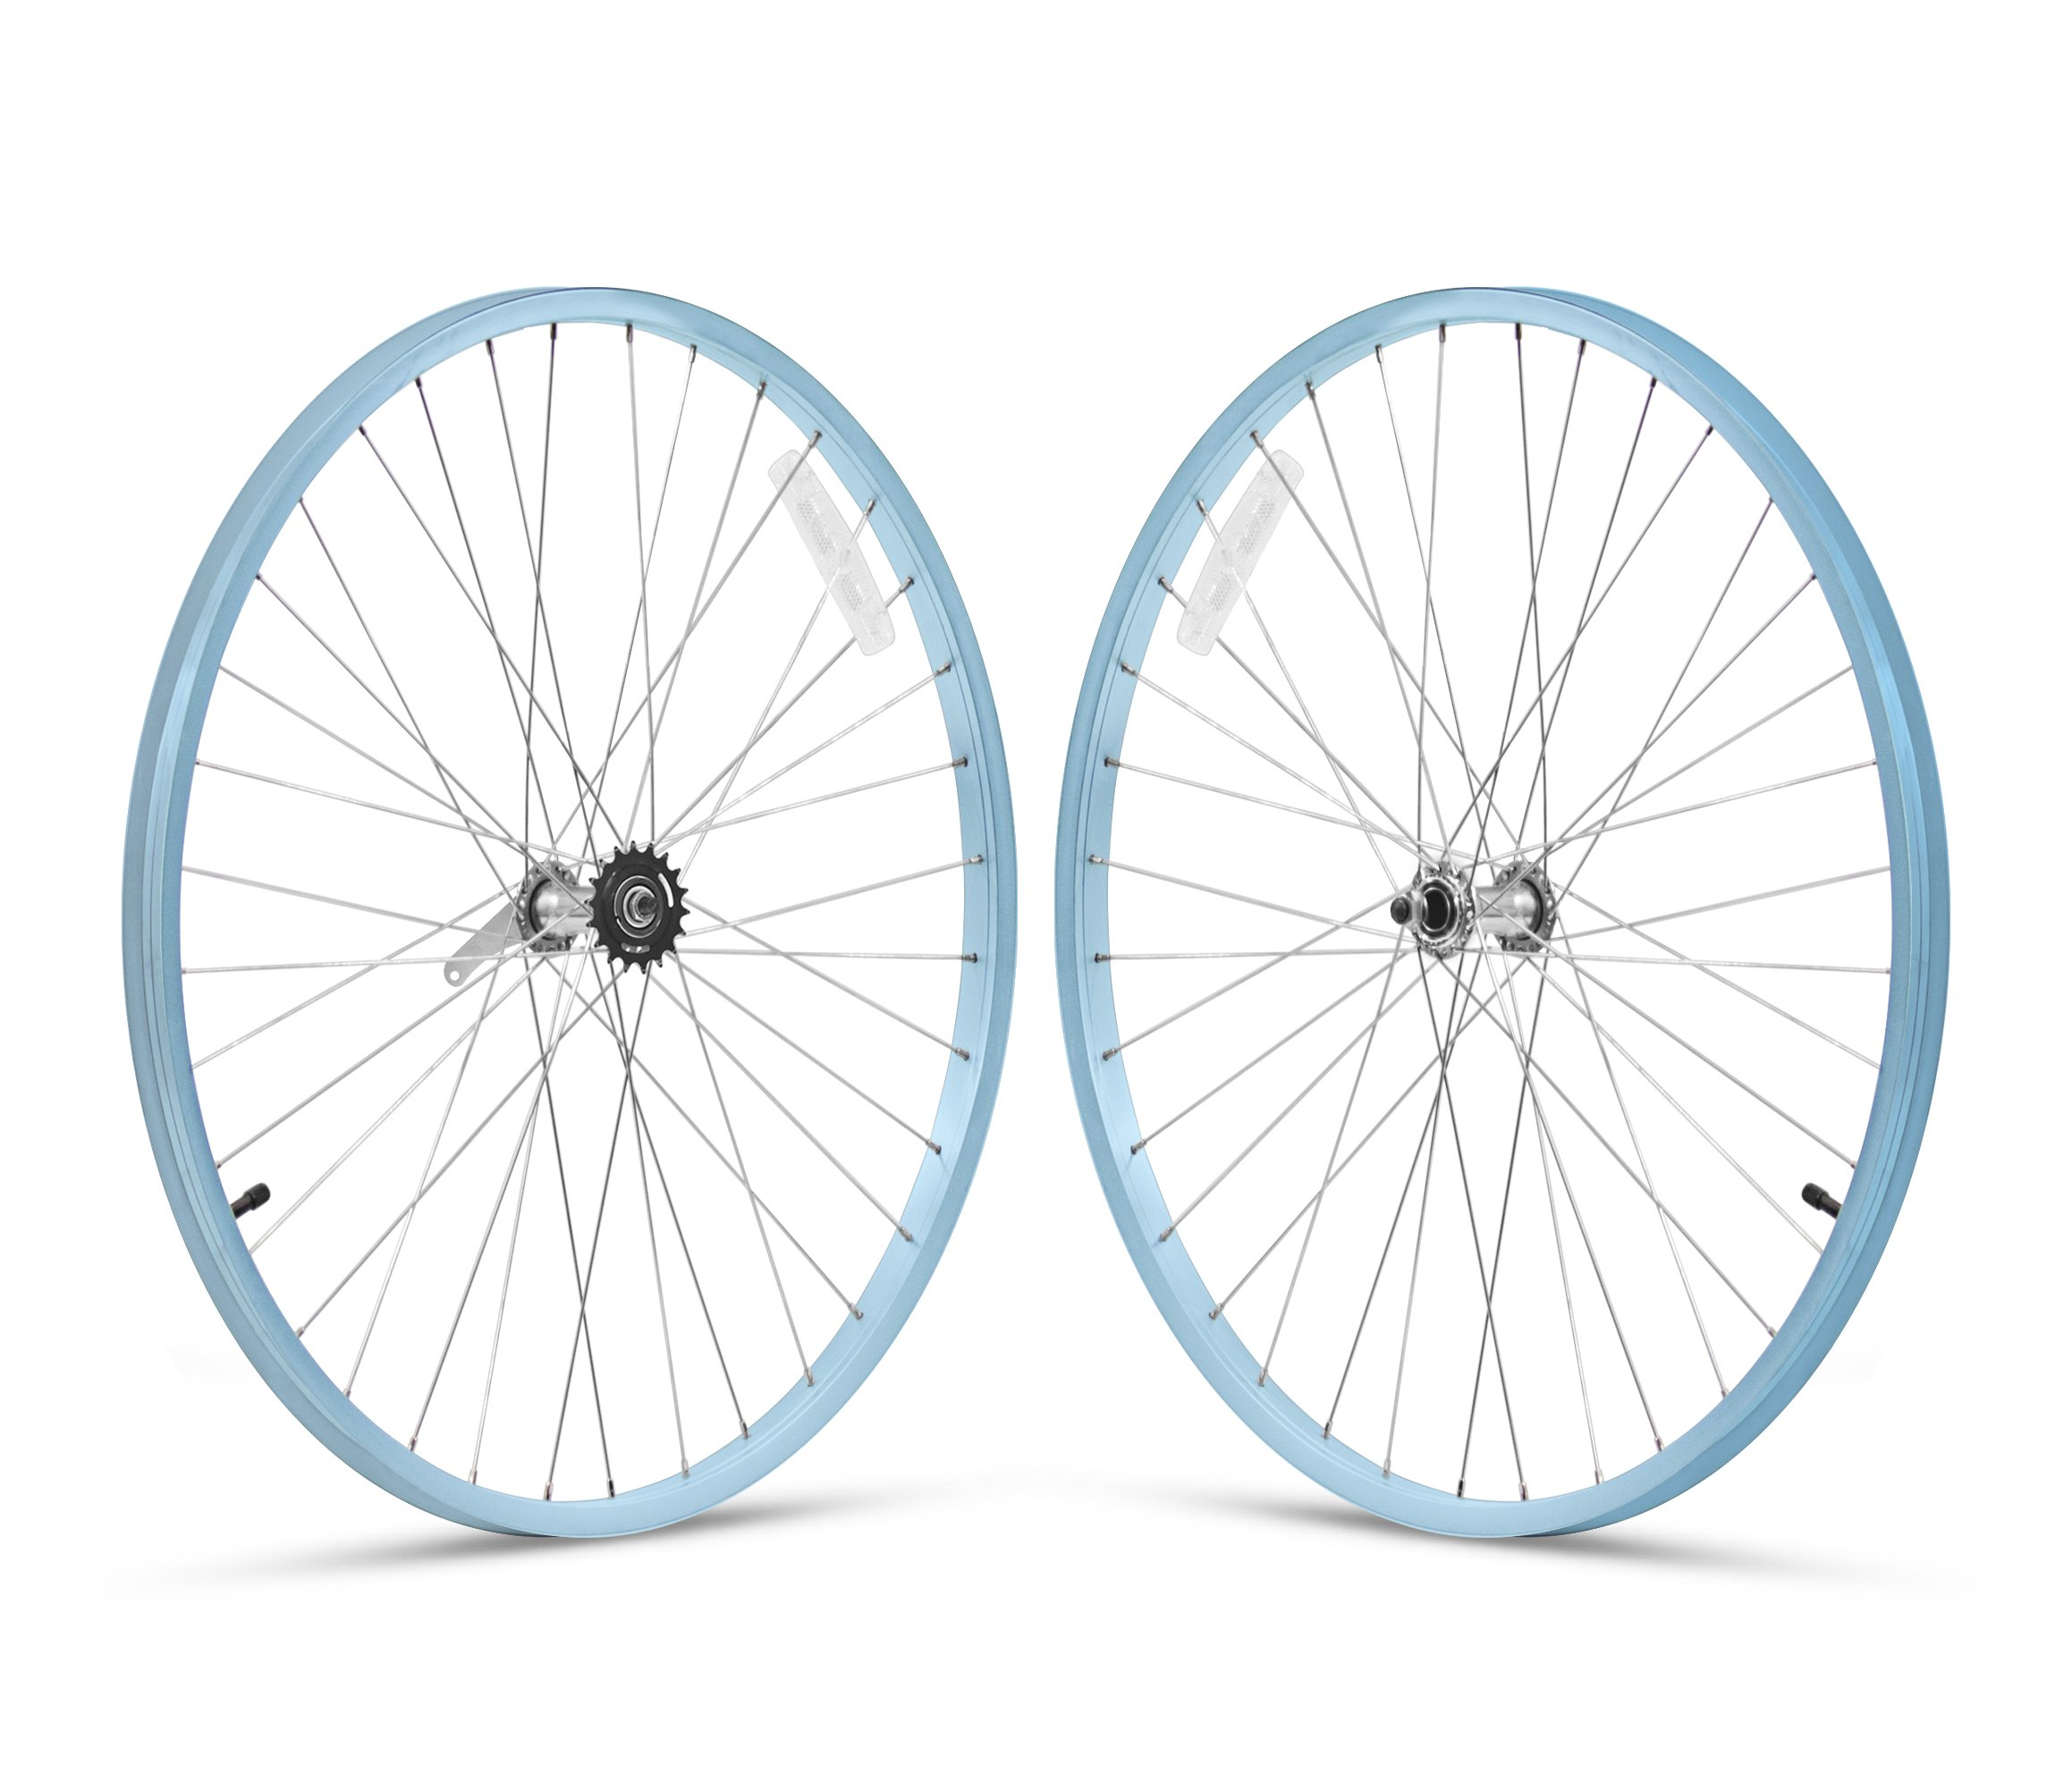 Firmstrong 1-Speed Beach Cruiser Bicycle Wheelset, Front/Rear, Baby Blue, 26'' by Firmstrong